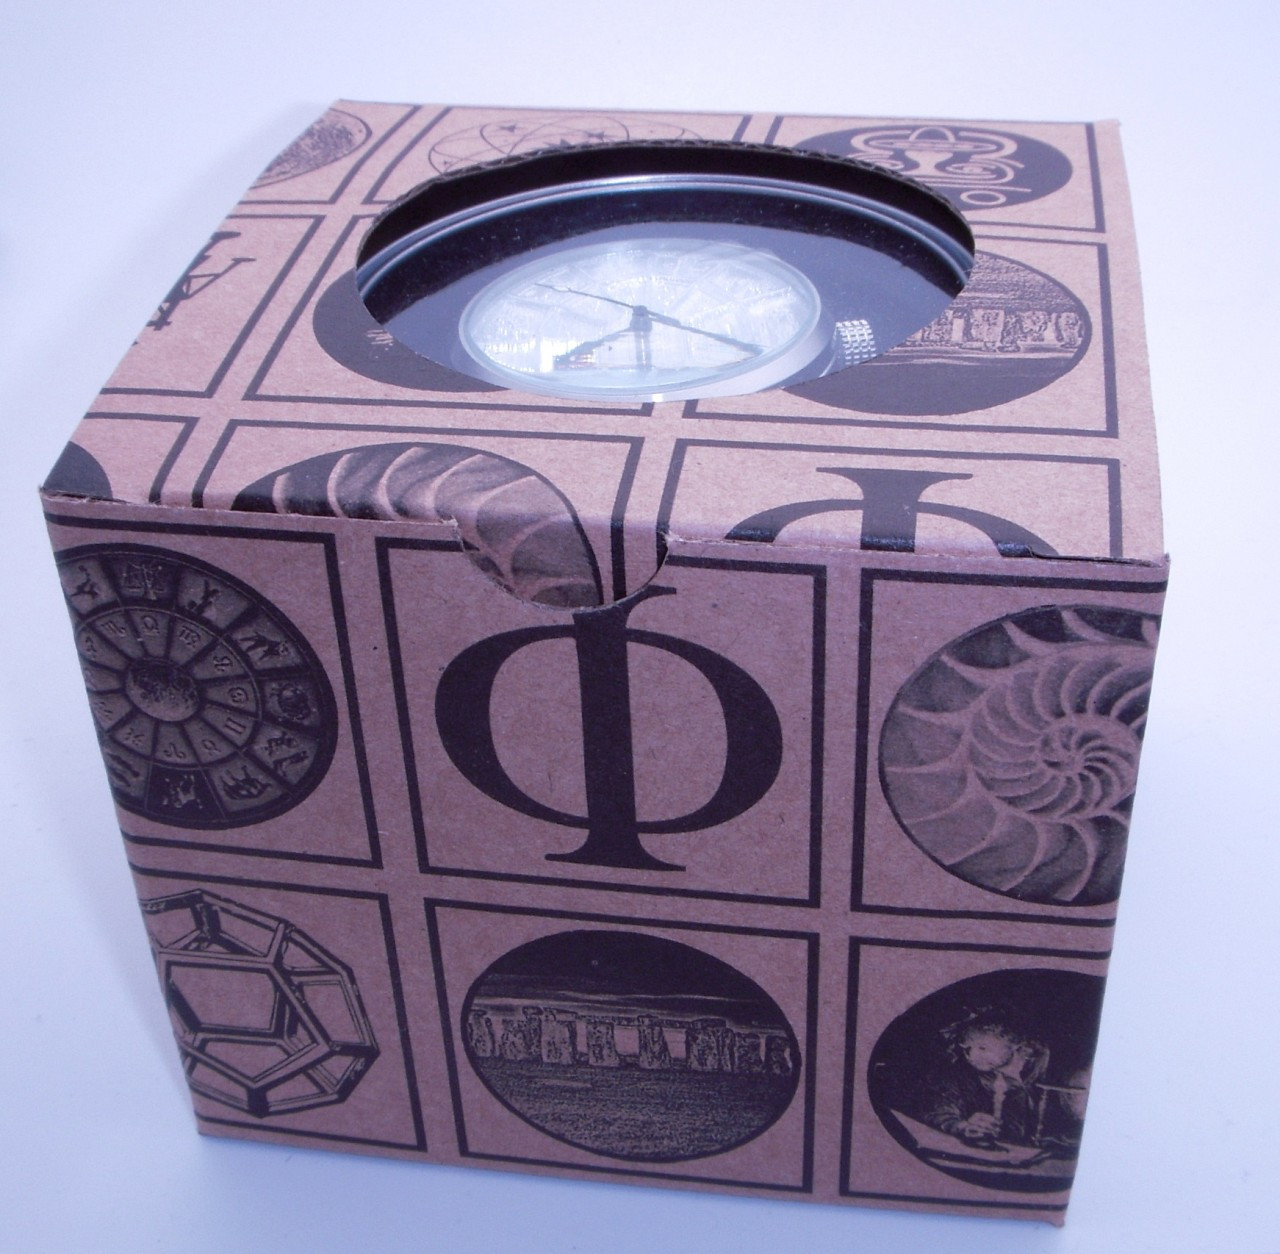 Tin box inside recycled paperboard sleeve